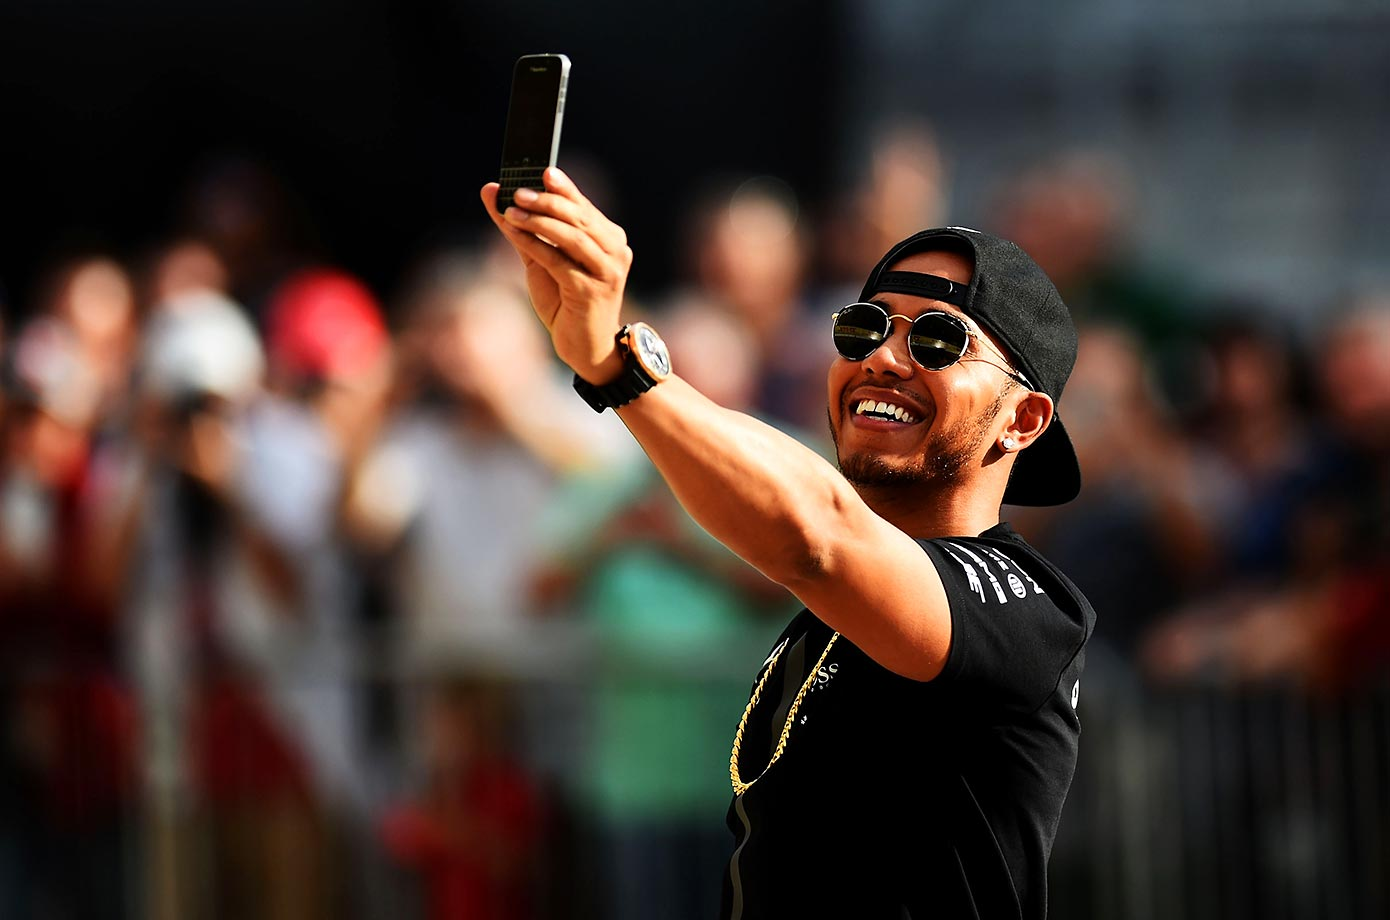 Lewis Hamilton takes a selfie in pit lane during previews for the U.S. Formula One Grand Prix in Texas.